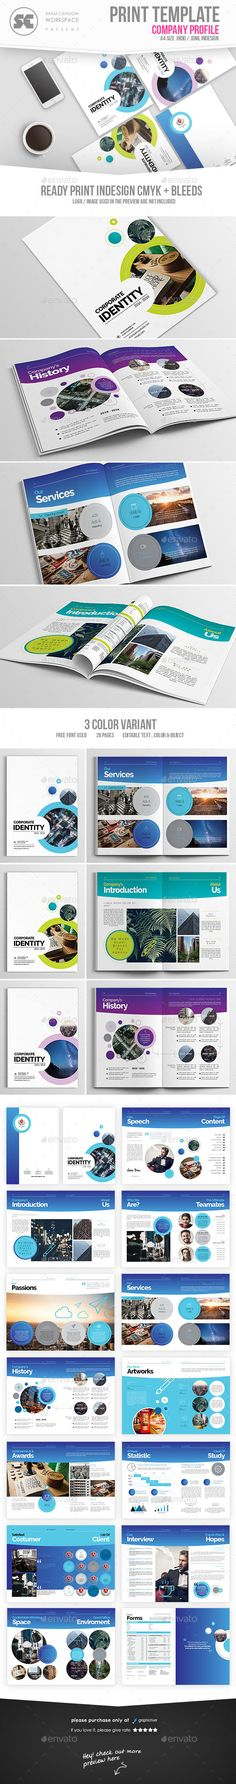 Brochure design created for an event management company based in - corporate profile template